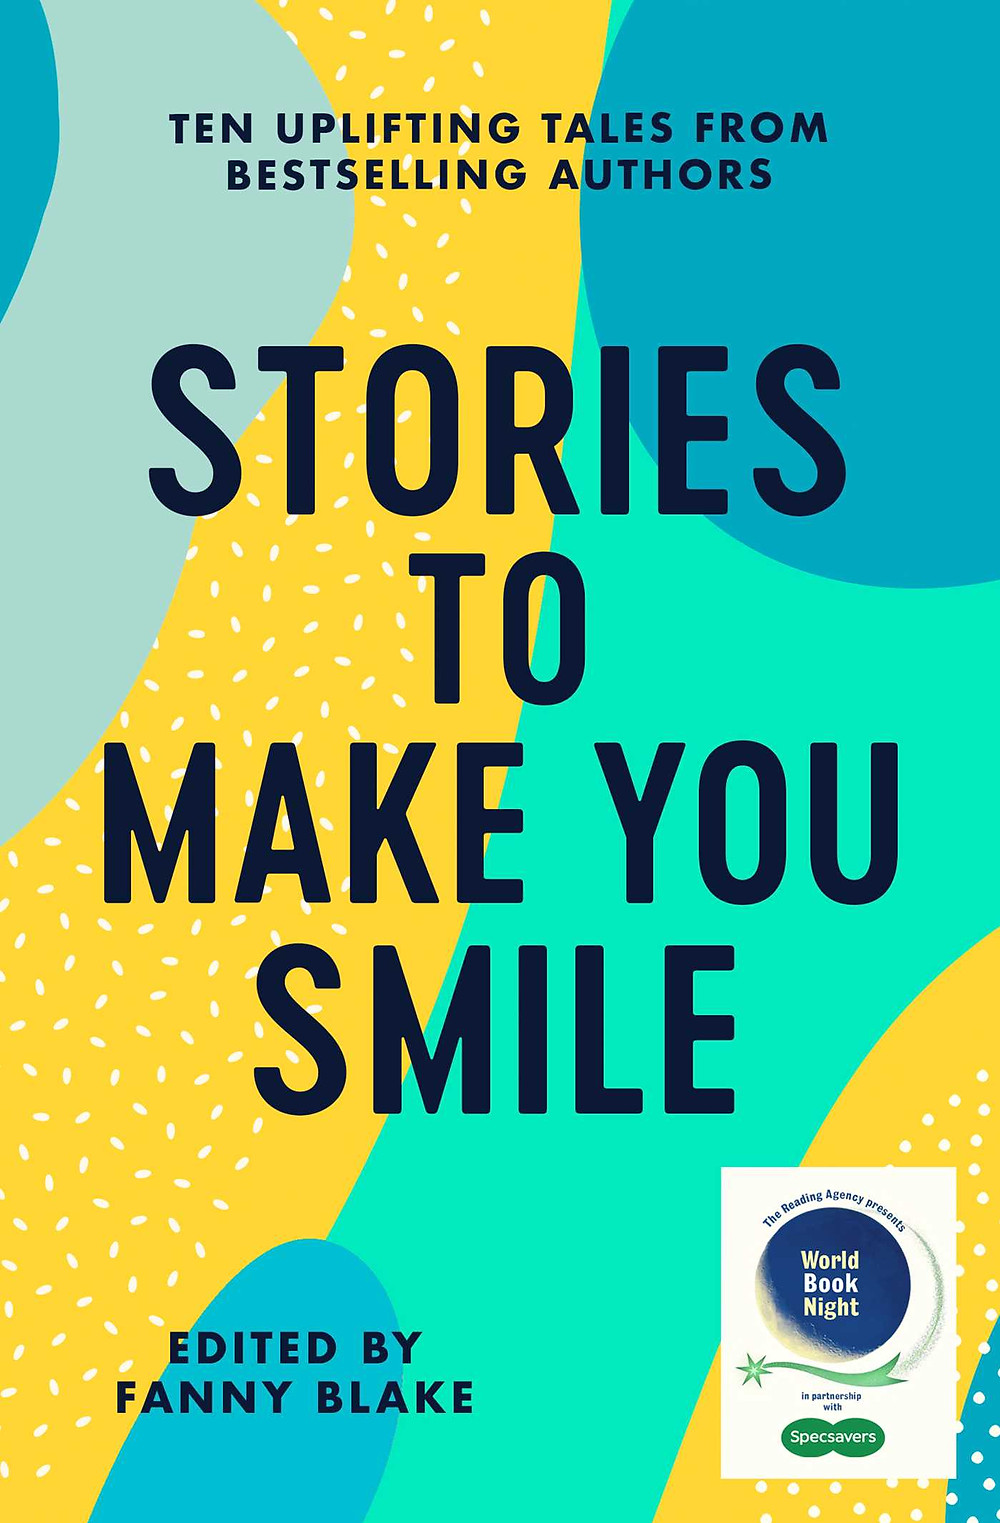 Book cover image of the short story collection Stories to Make You Smile